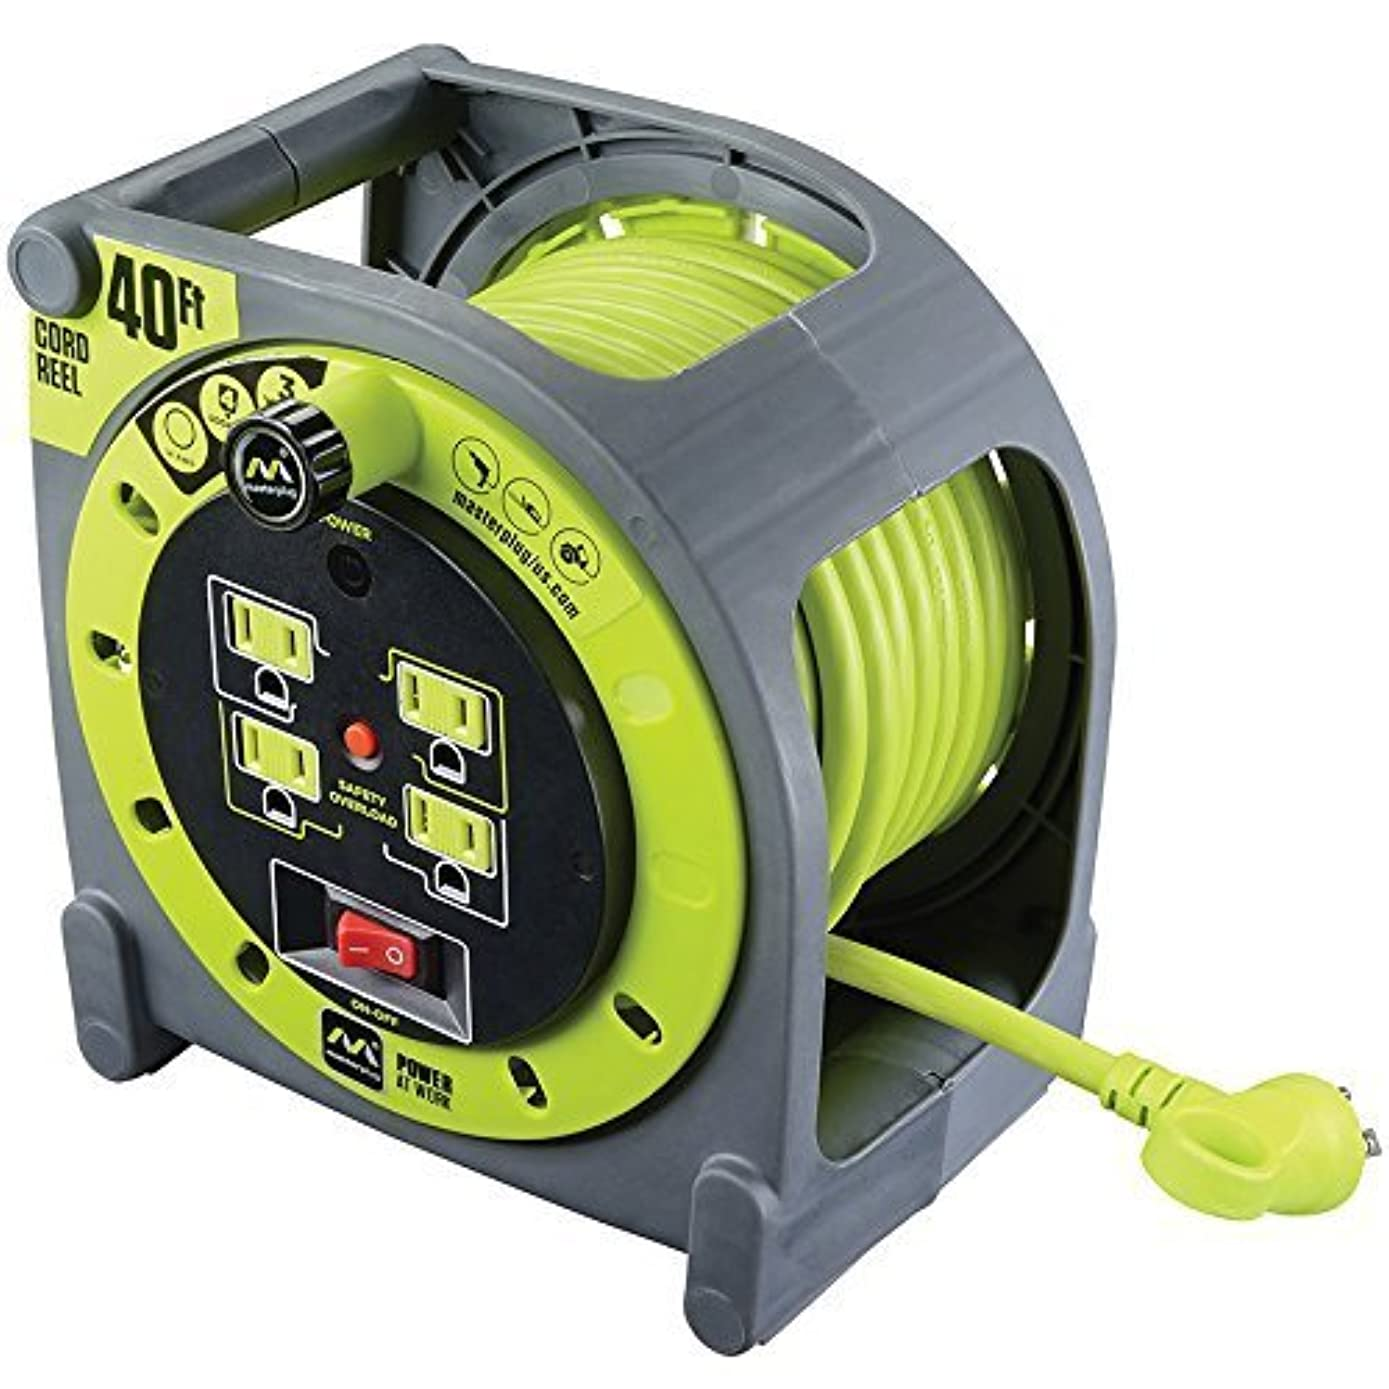 Masterplug 40ft Extension Cord Case Reel with 4 120V / 13 amp Integrated Outlets and Thermal Overload Breaker